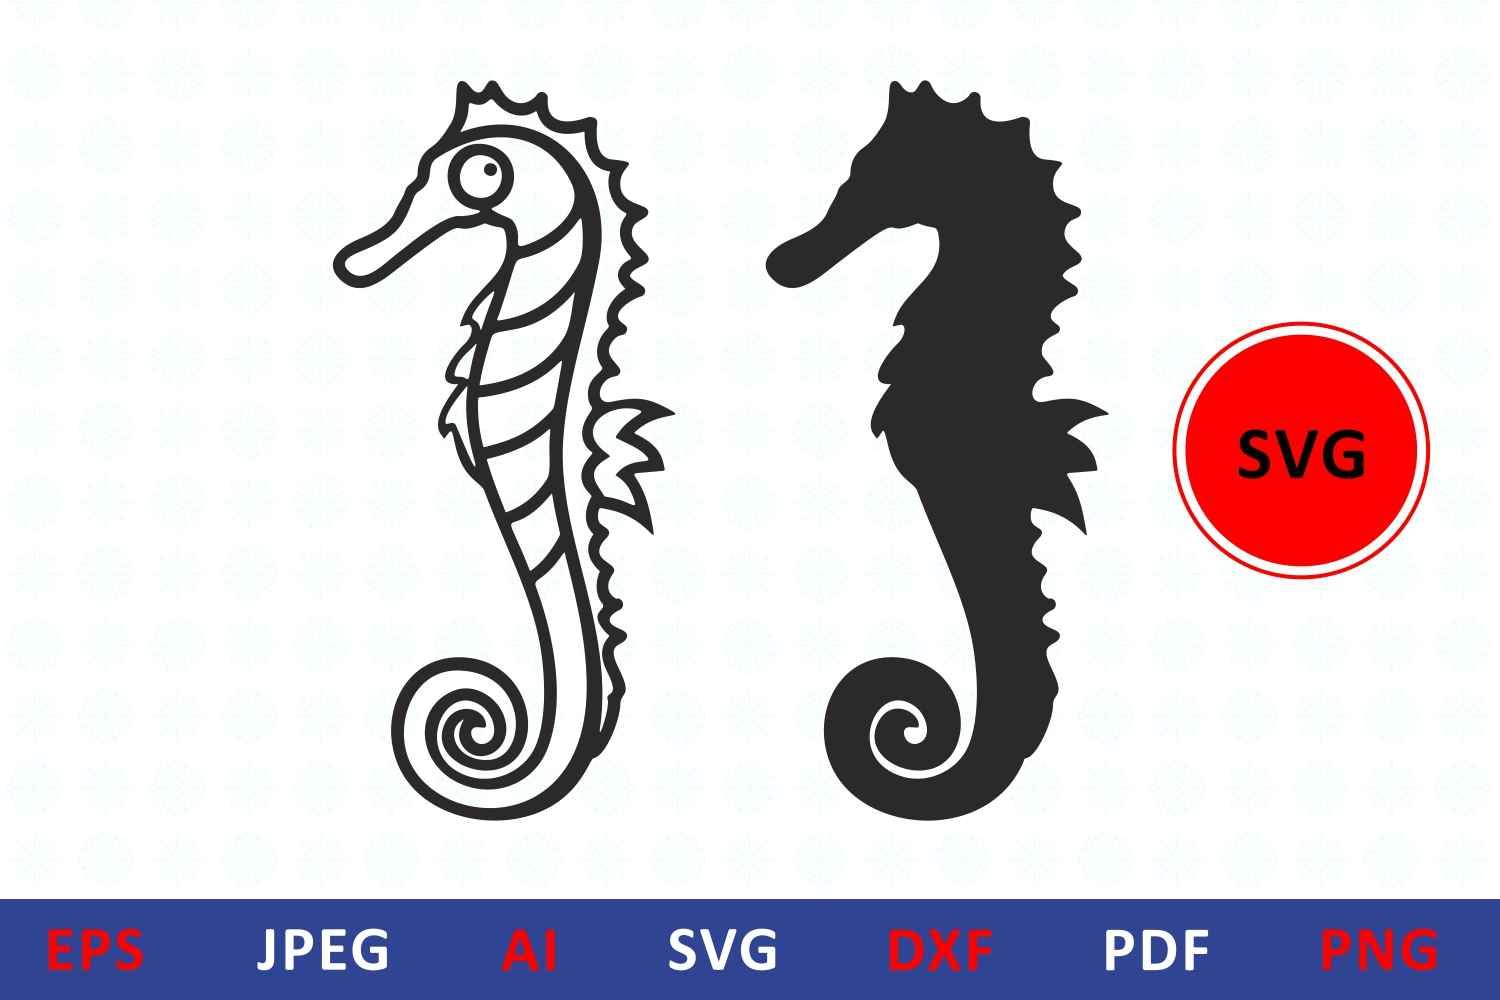 Download Free Seahorse Silhouette Icon Sea Horse Graphic By Millerzoa for Cricut Explore, Silhouette and other cutting machines.